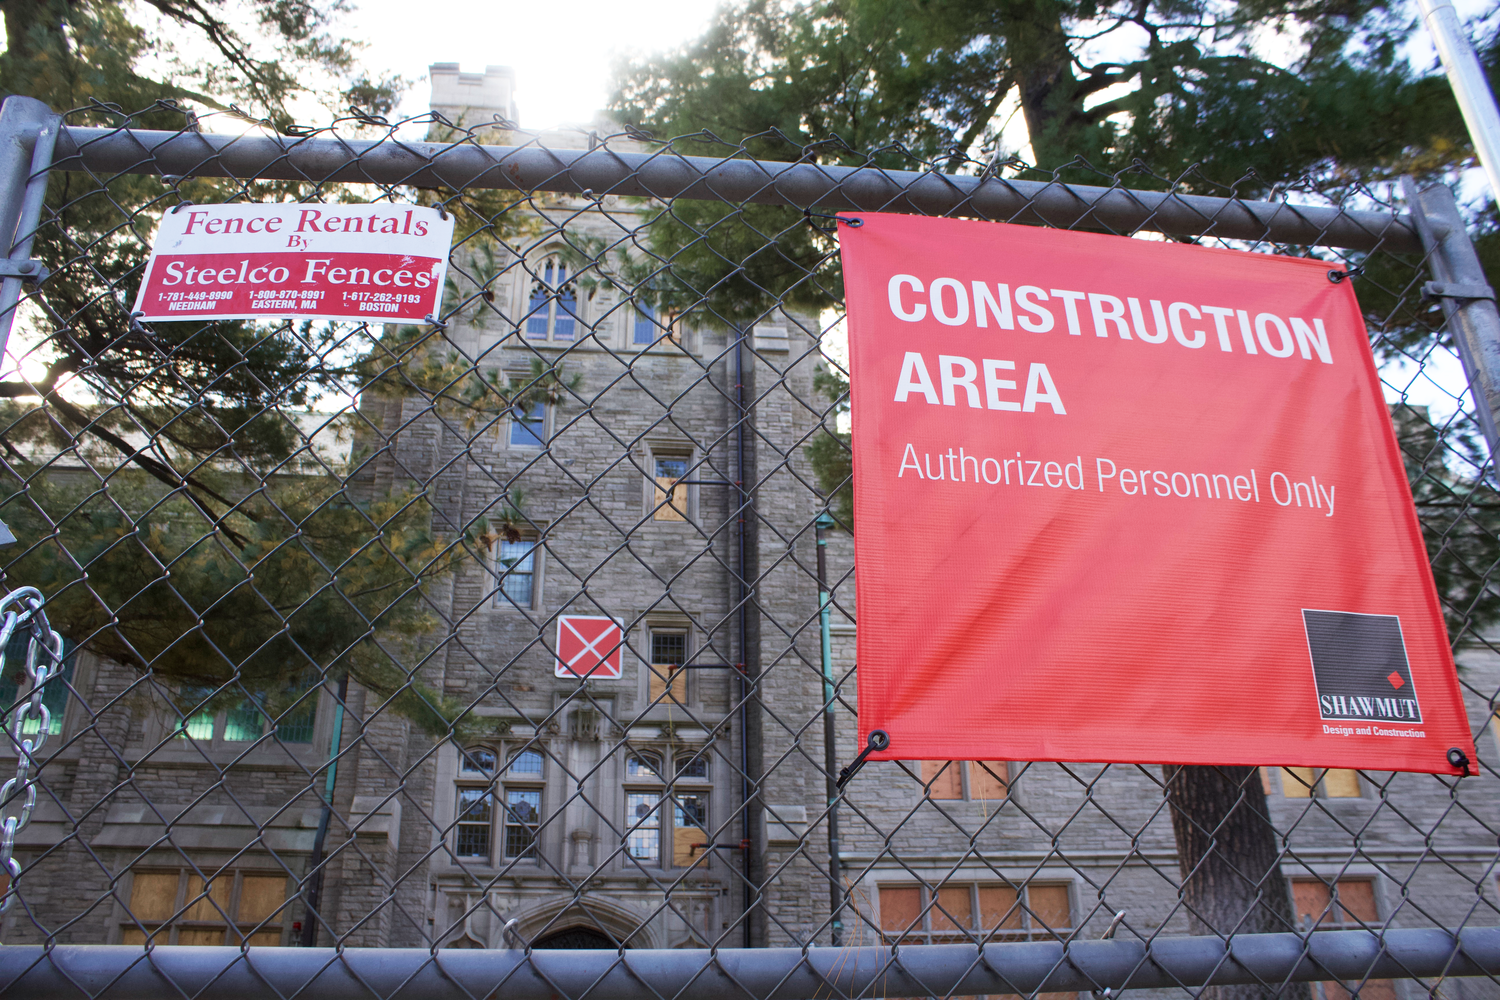 Swartz Hall, located at the Harvard Divinity School, is undergoing serious renovations with the goal to create a more sustainable building. The construction project will upgrade the building's electrical, plumbing, and climate control systems.